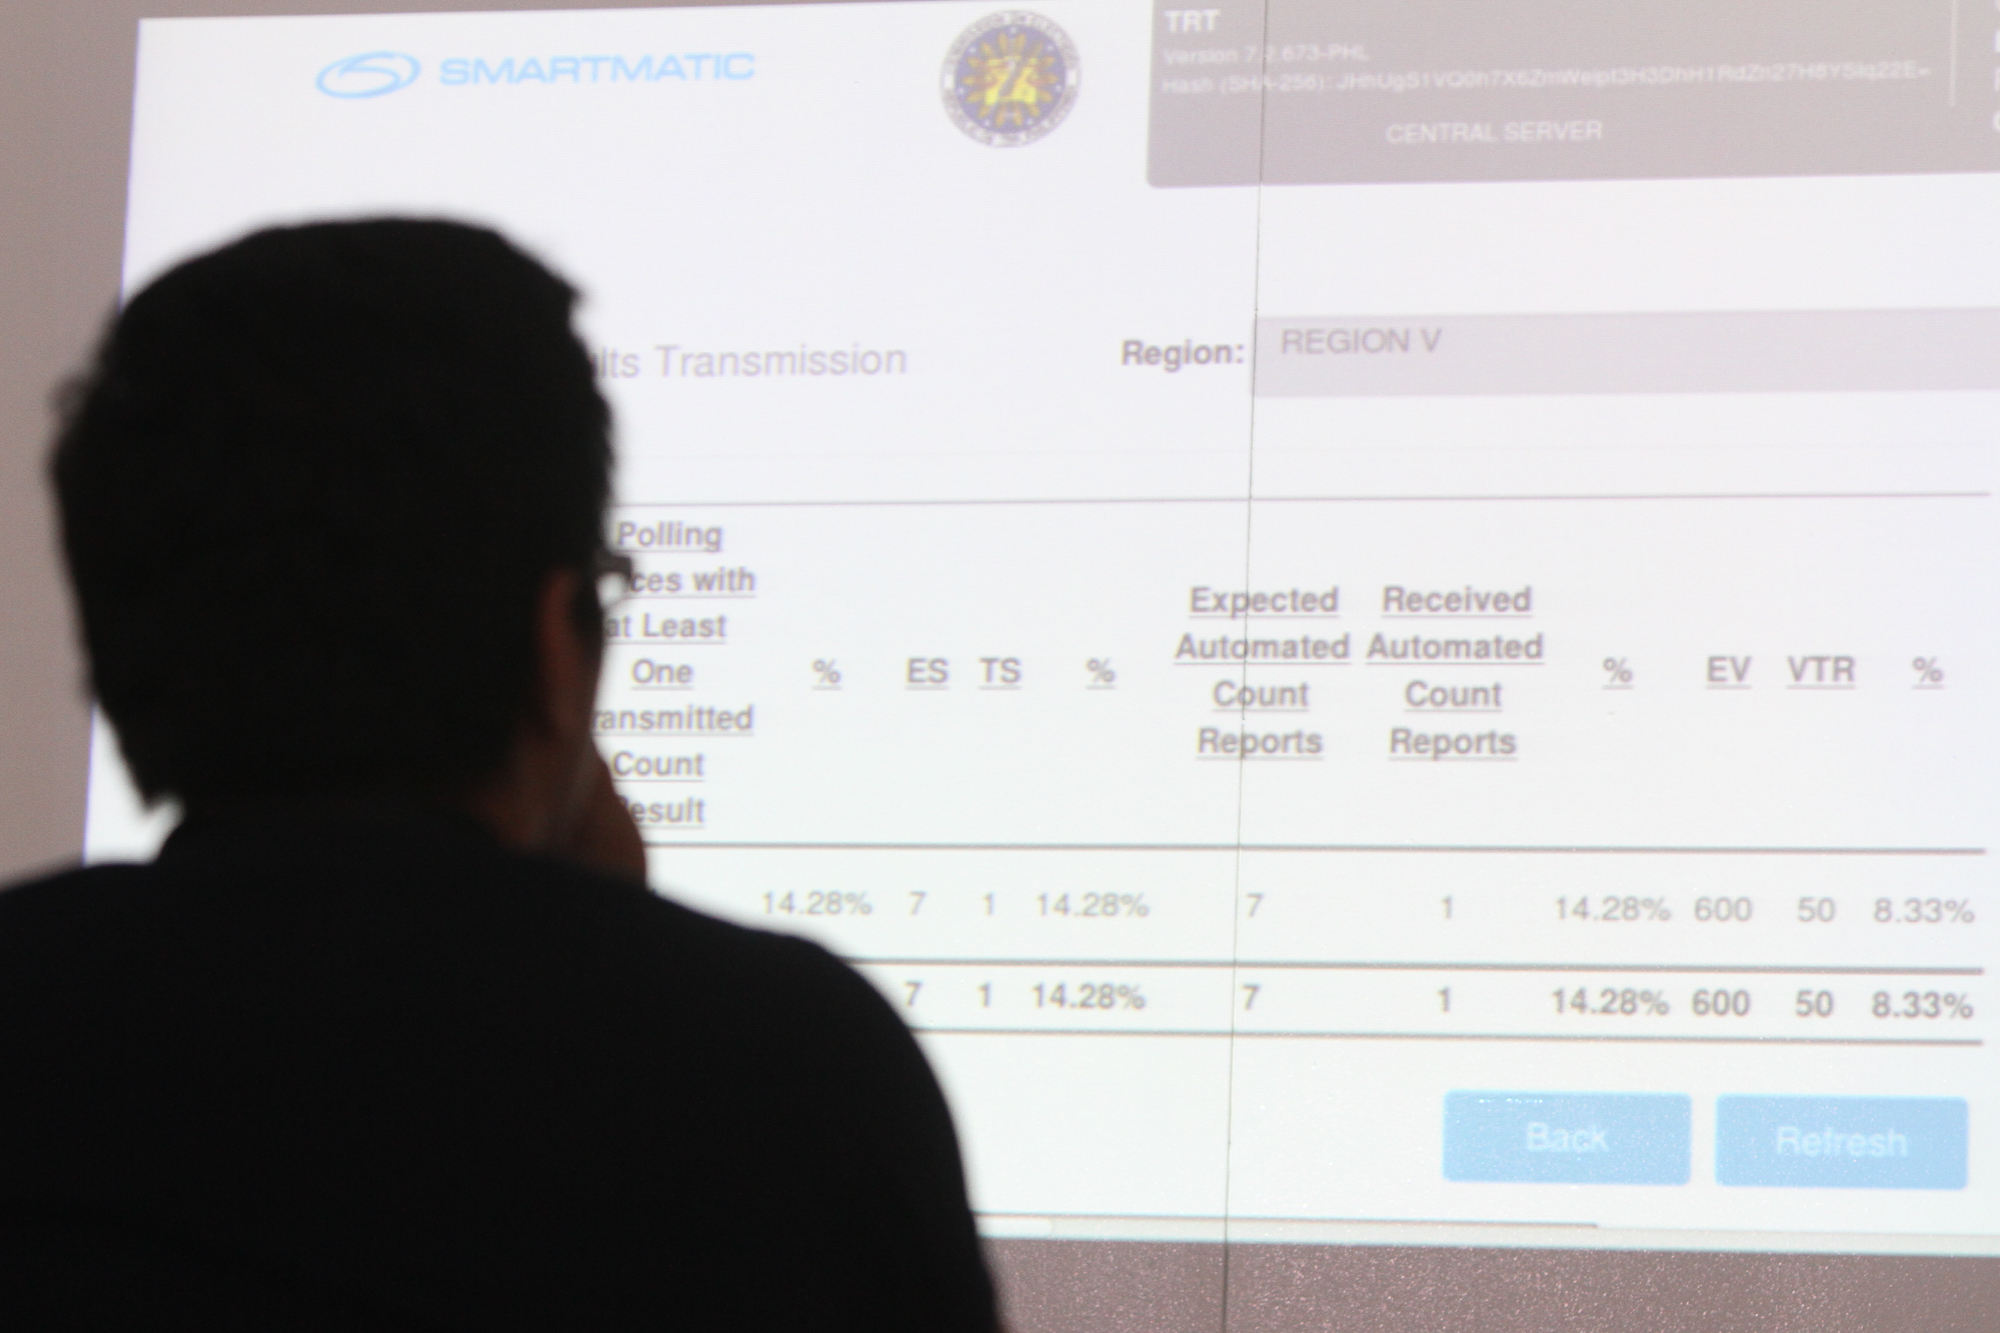 TRANSMISSION TEST. The Commission on Elections tests the transmission of election results in its Santa Rosa warehouse on April 23, 2016. Photo by Lito Boras/Rappler